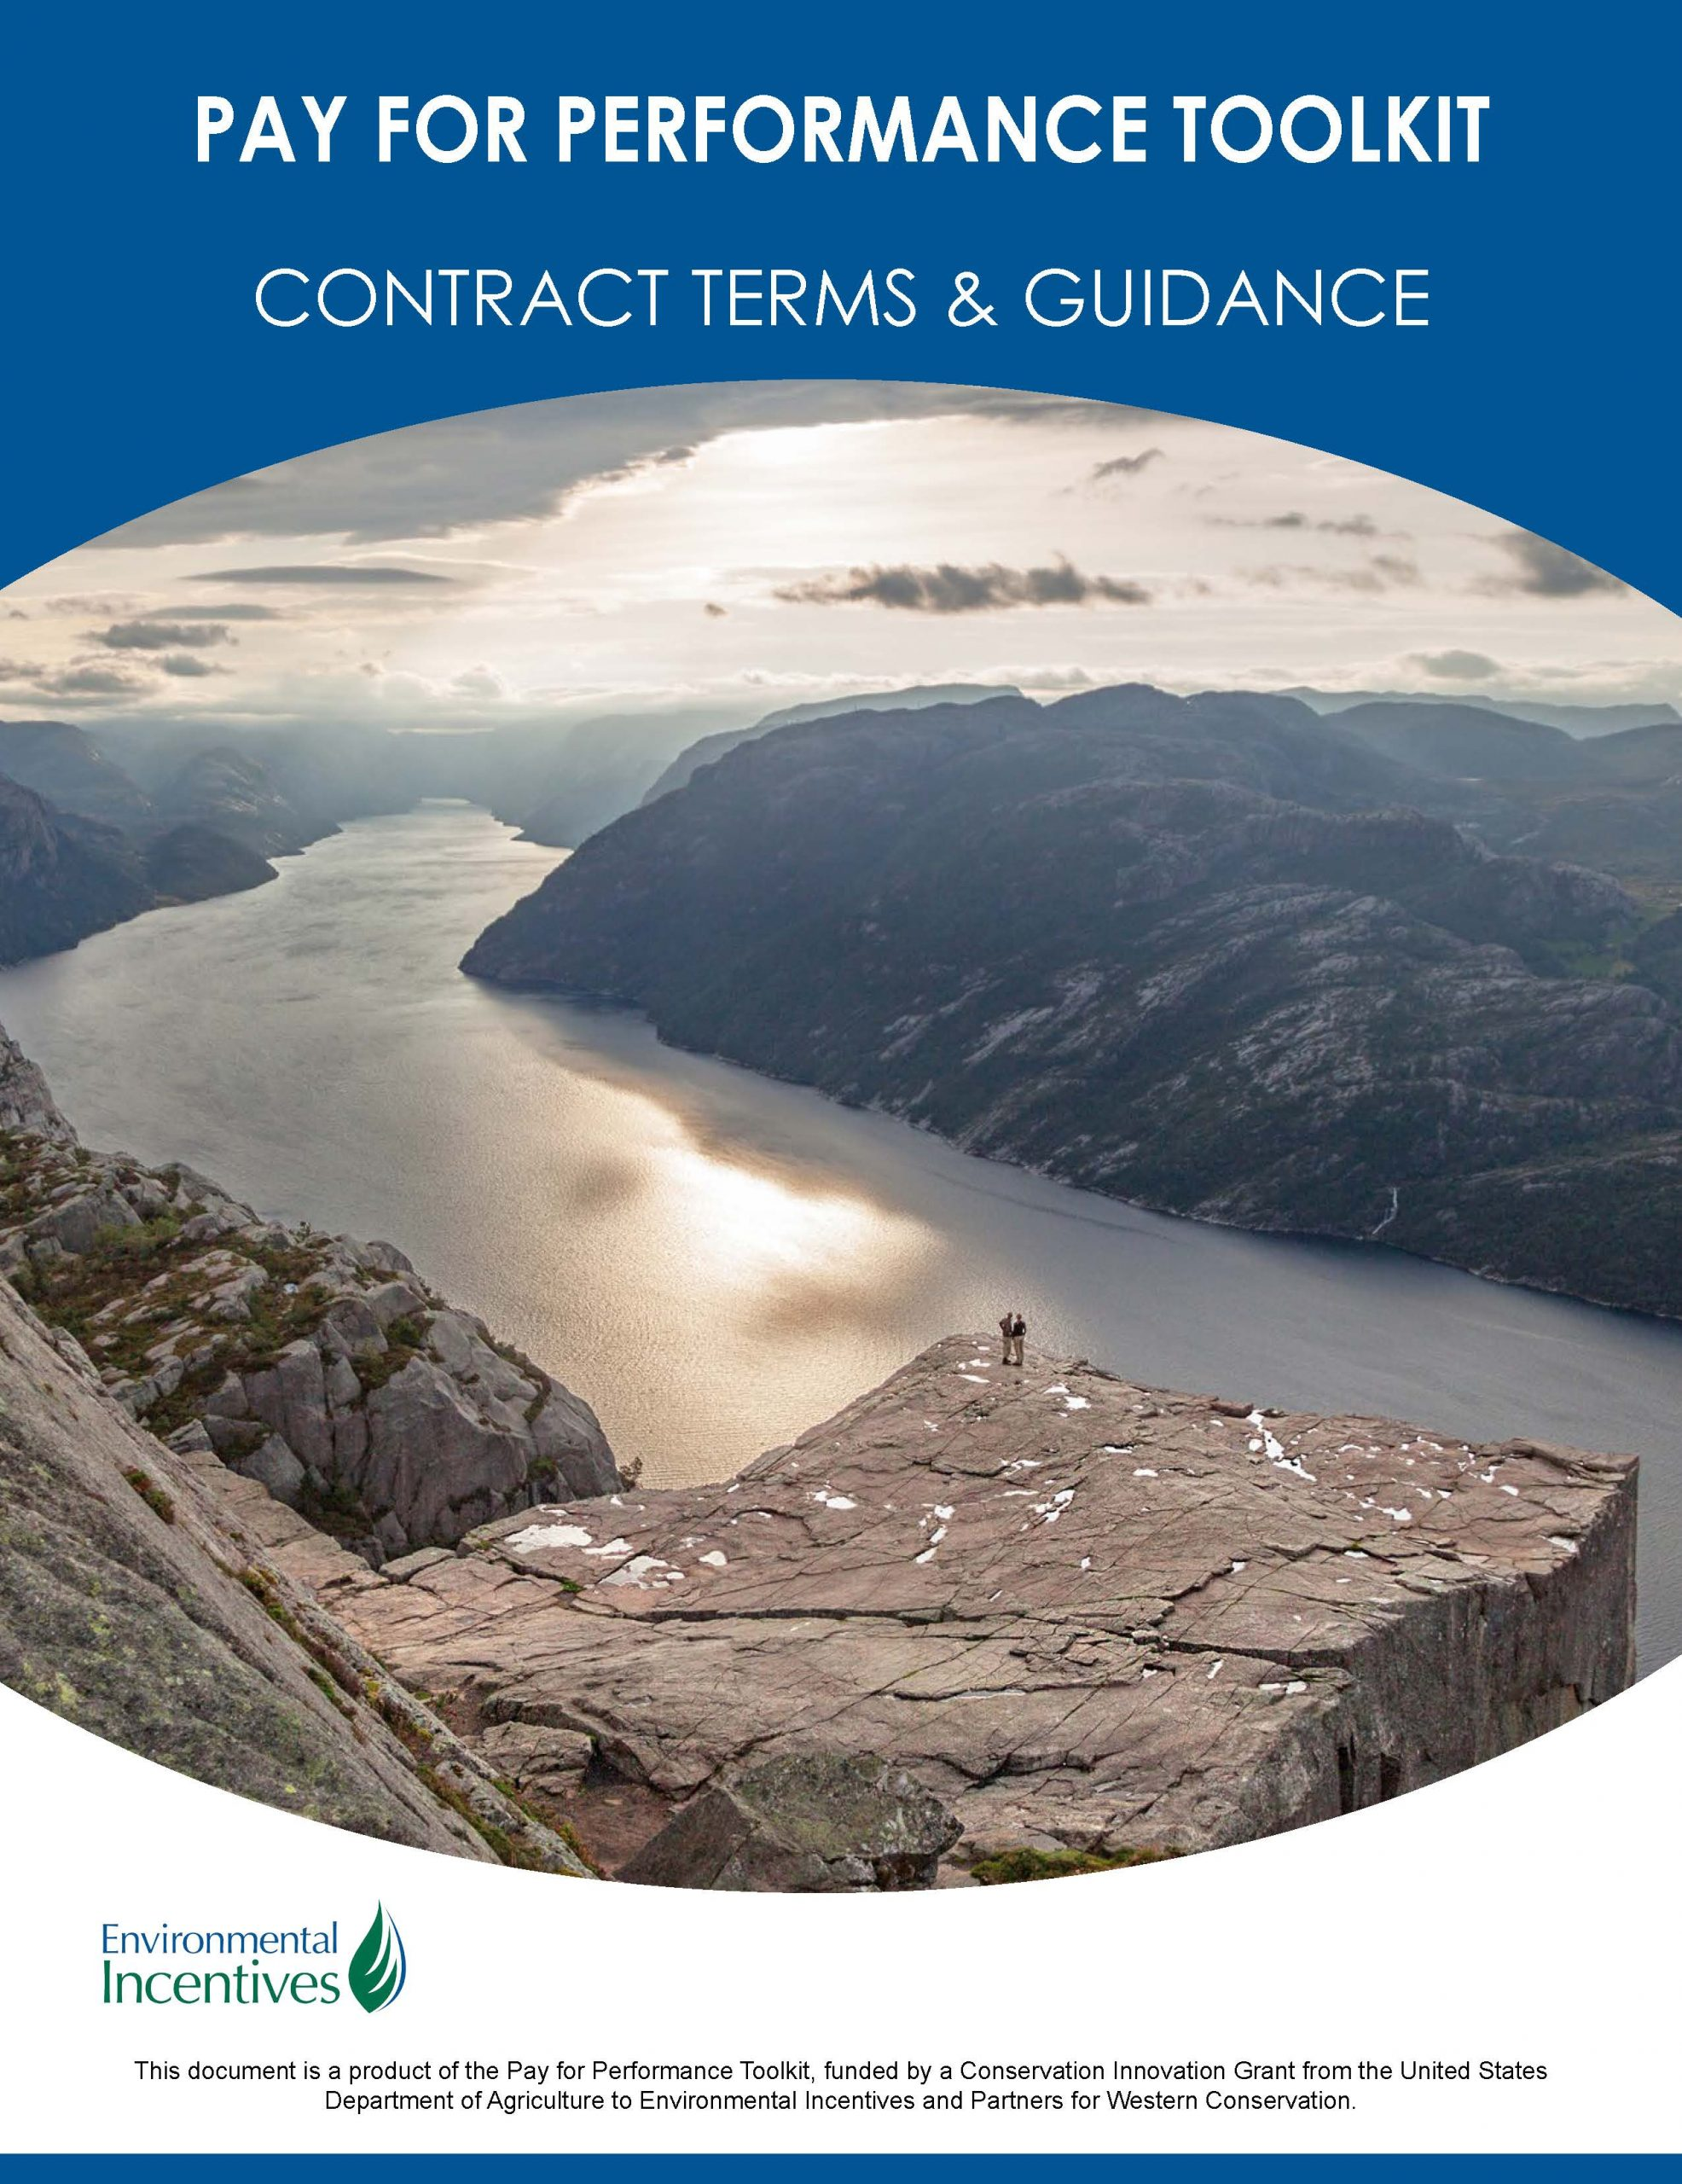 Pay for performance toolkit - contract terms and guidance